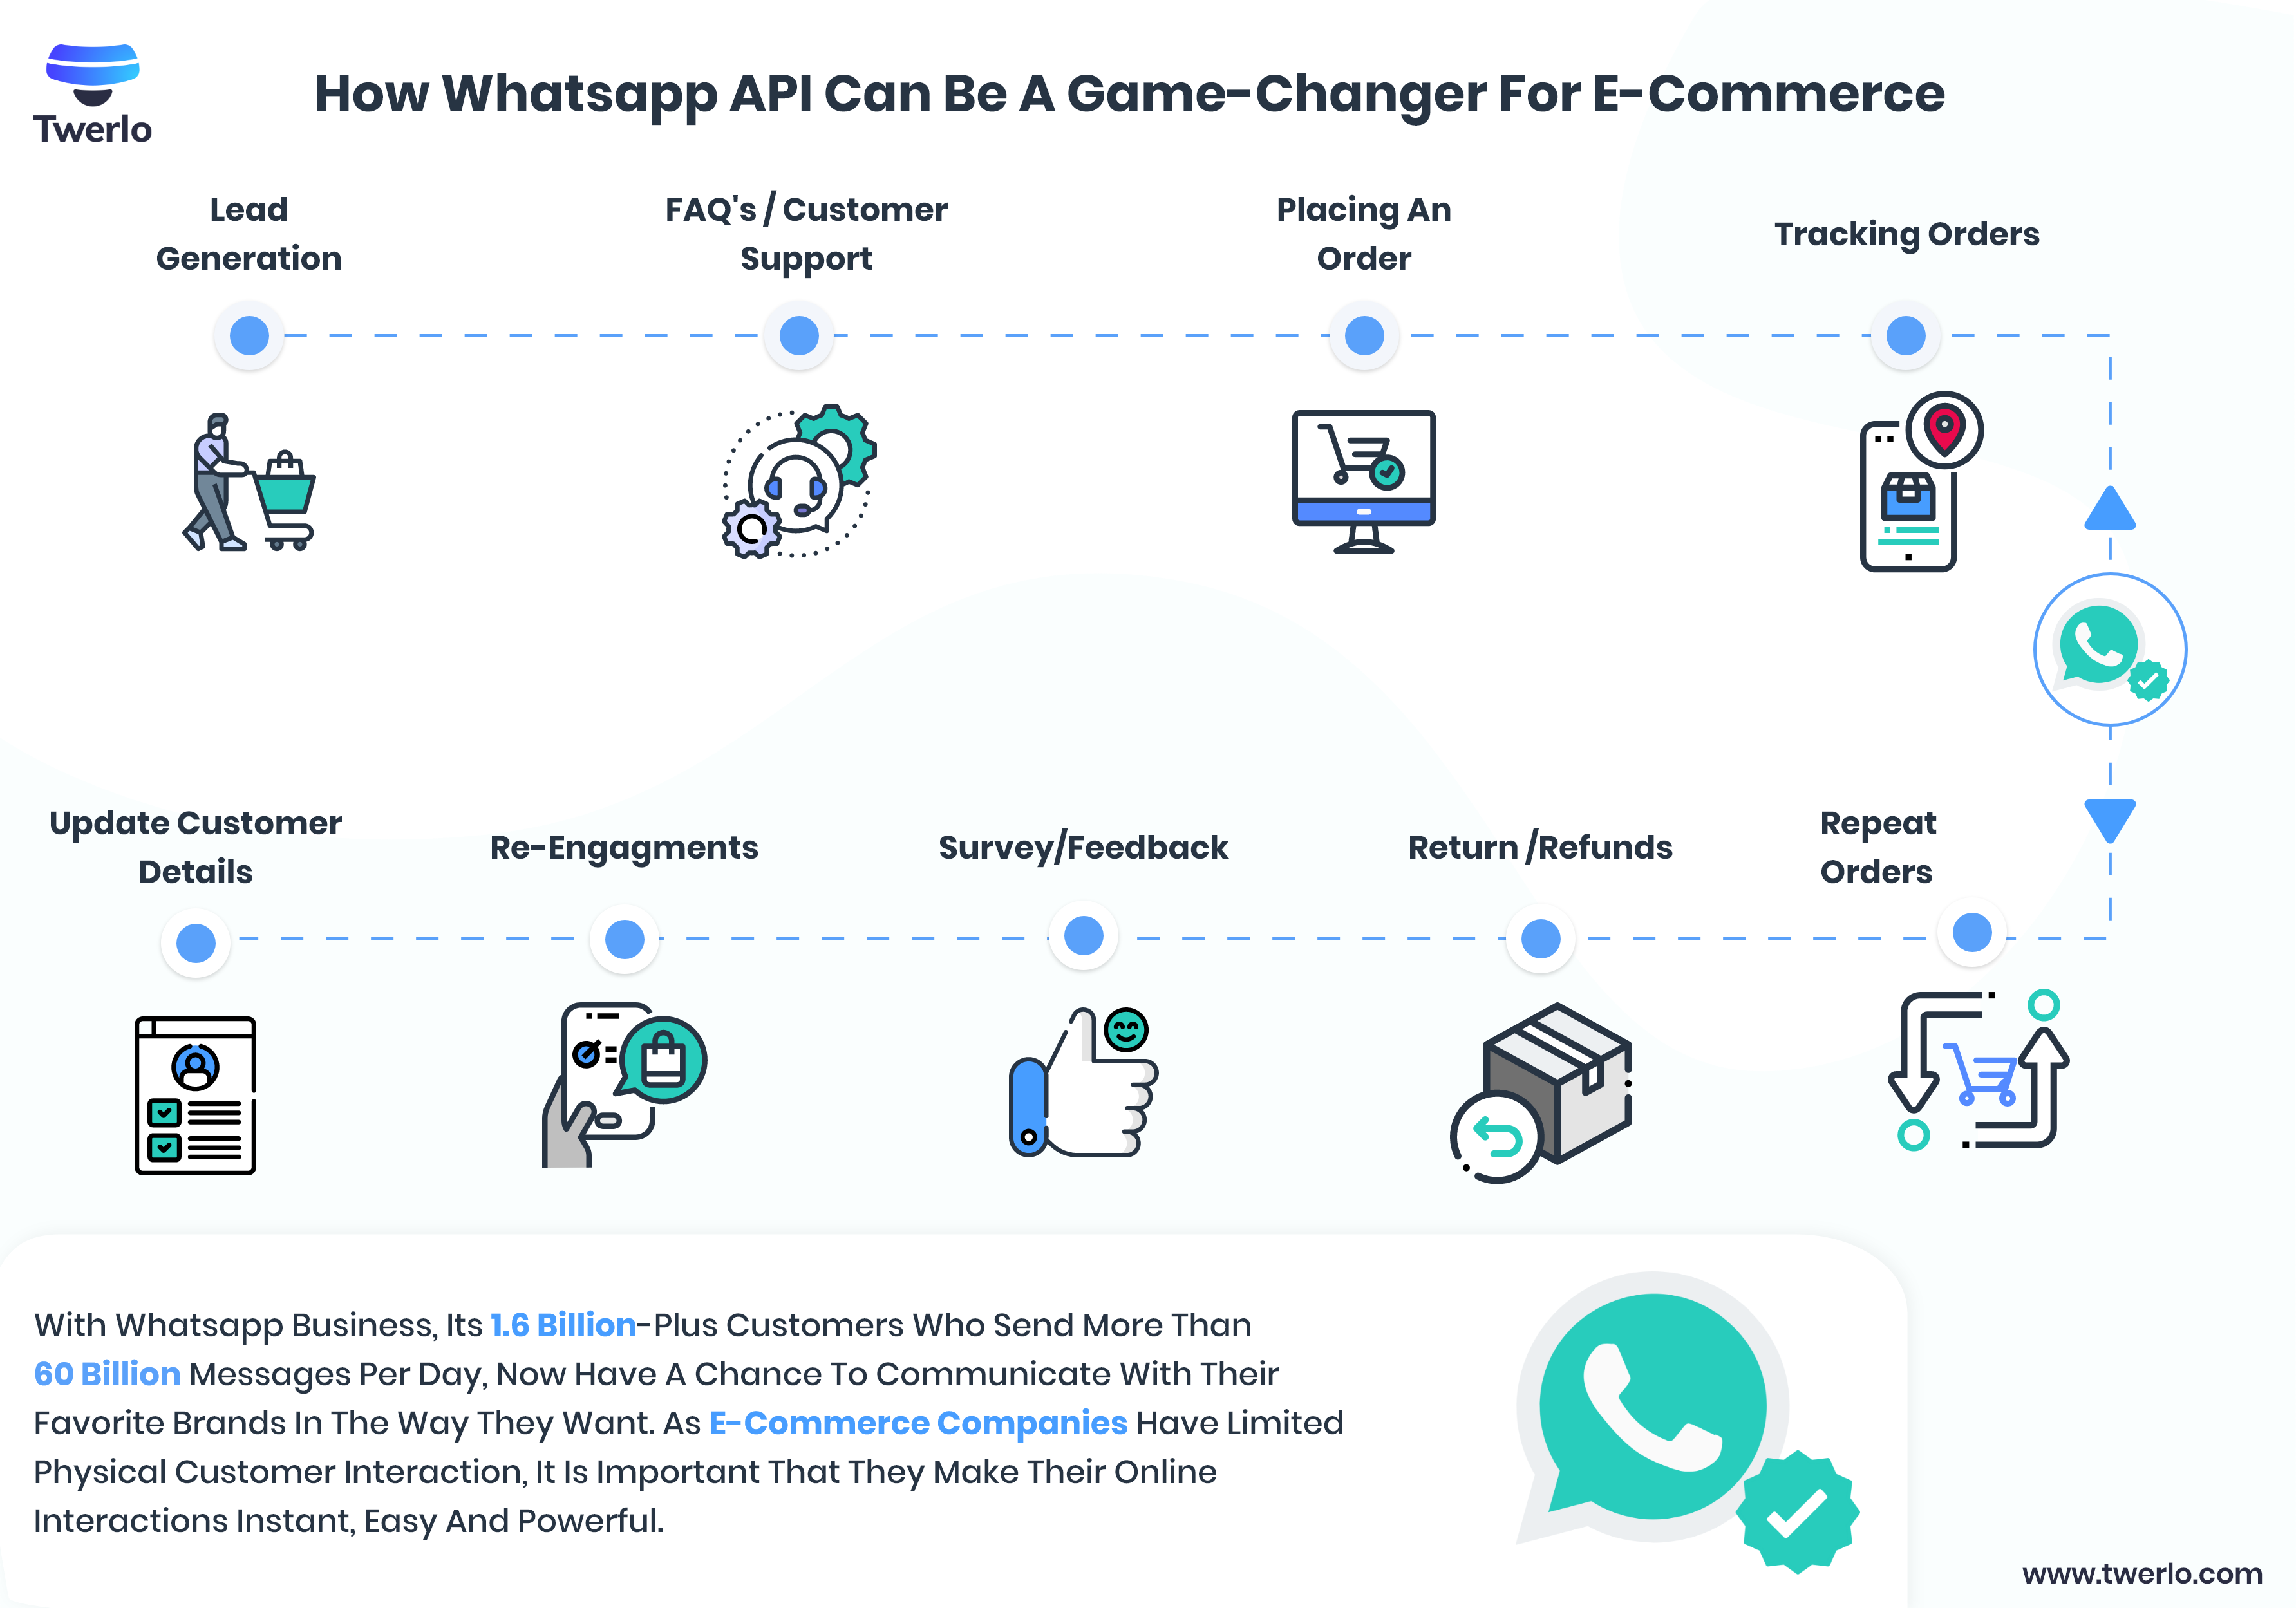 How Whatsapp API Can Be A Game-Changer For E-Commerce